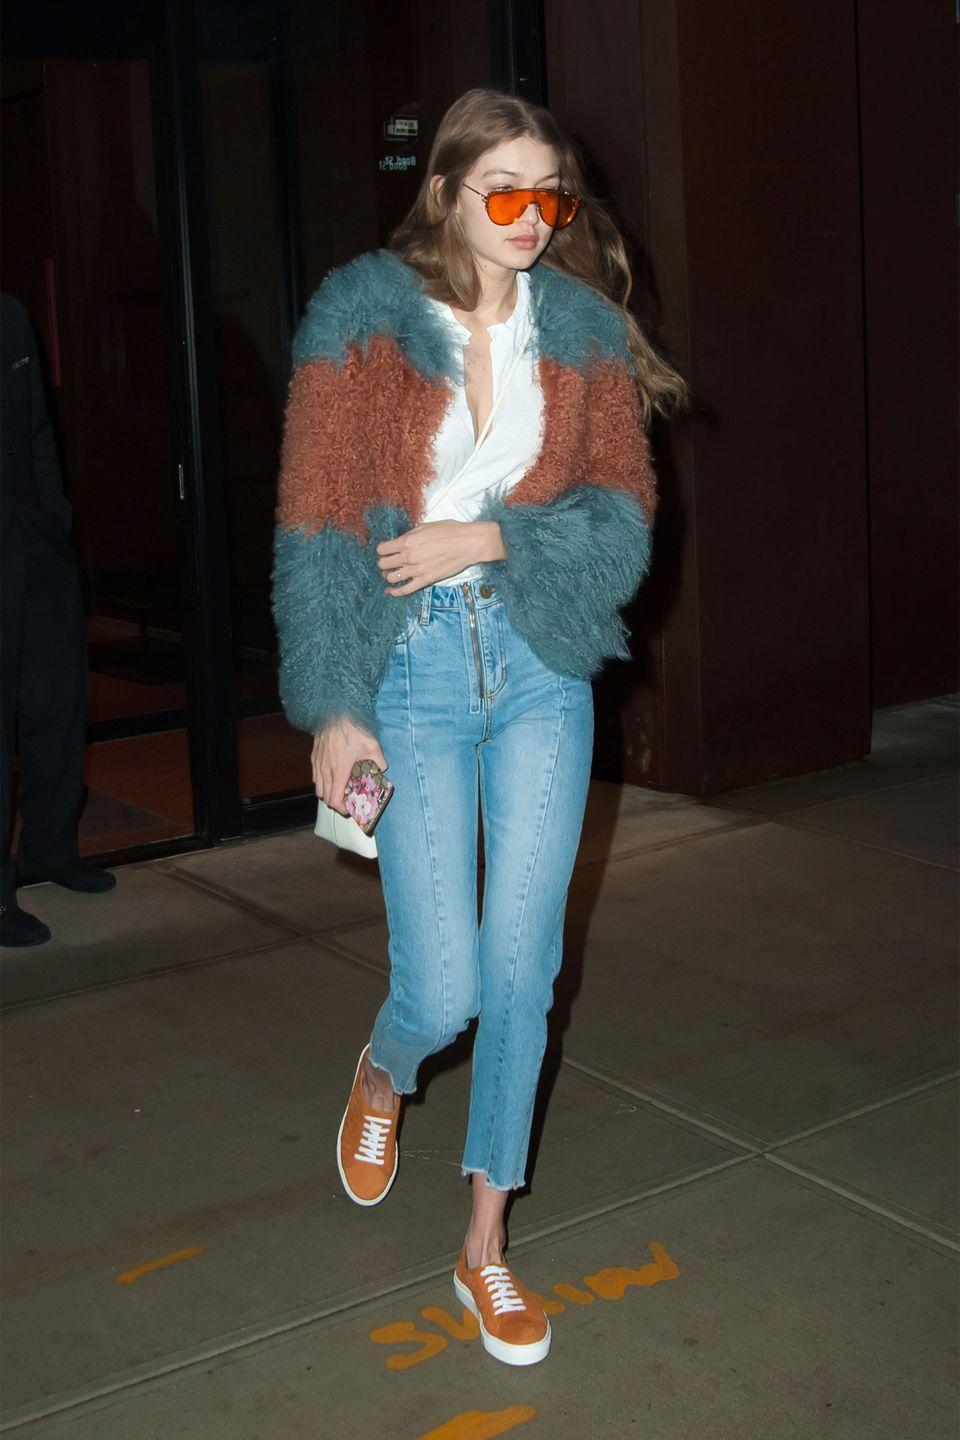 <p>In teal and auburn shag coat, white t-shirt, Sandro cropped jeans, suede sneakers by M. Gemi, a Gucci phone case and Gentle Monster orange tinted sunglasses while leaving her apartment in NYC.</p>